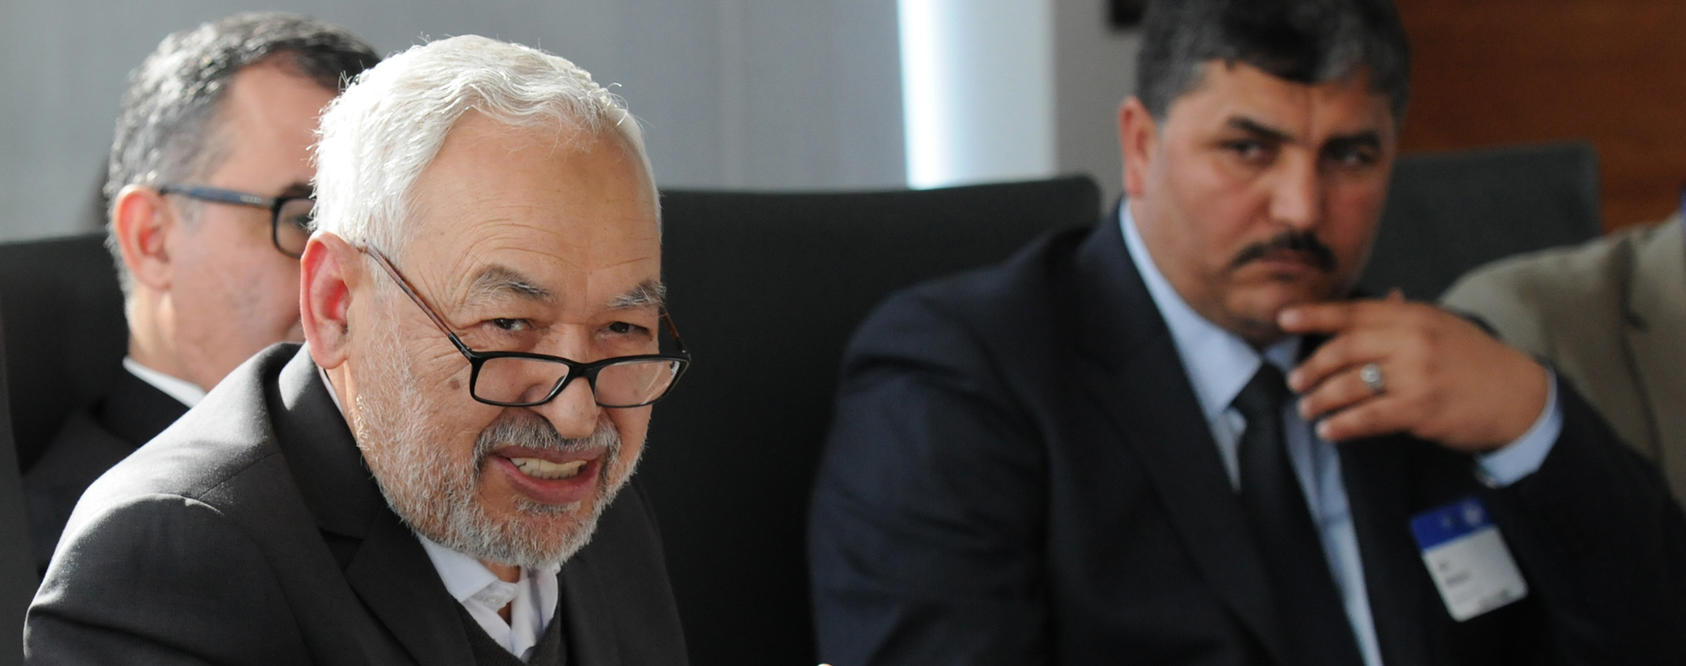 Tunisia's Ghannouchi Points to Country's Democratic Advances, New Constitution